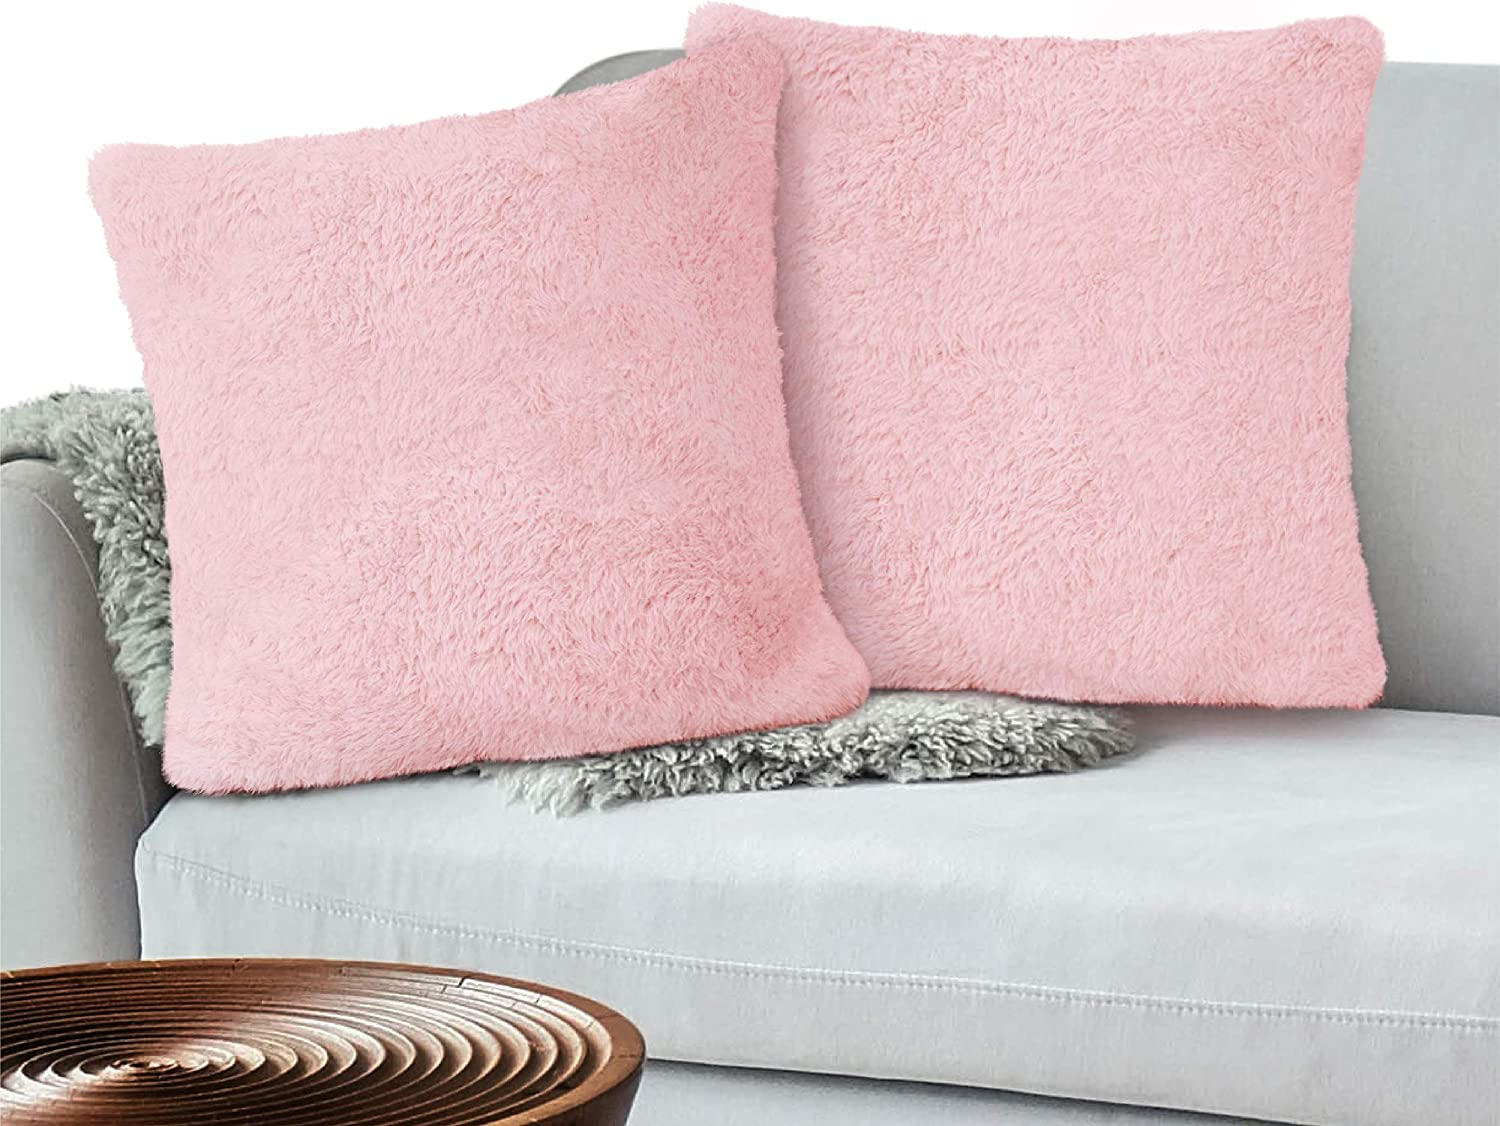 Carvan Pink Throw Perfect For Covering Your Furniture